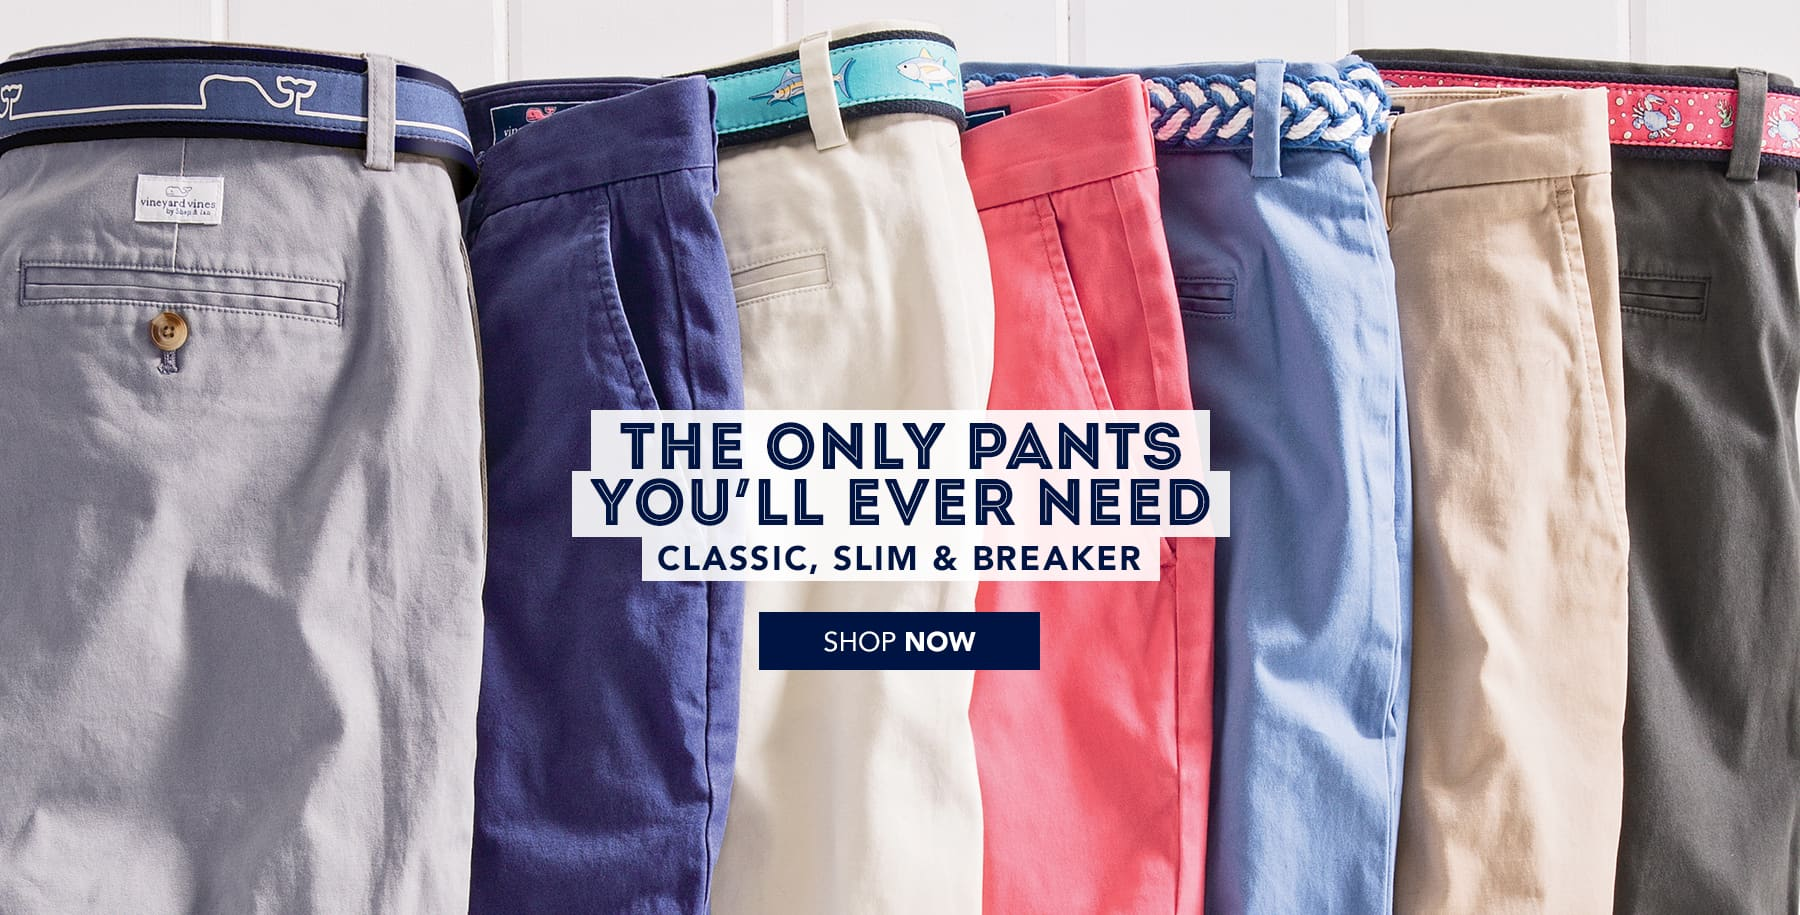 The only pants you'll ever need. Classic, Slim & Breaker. Shop men's pants now.